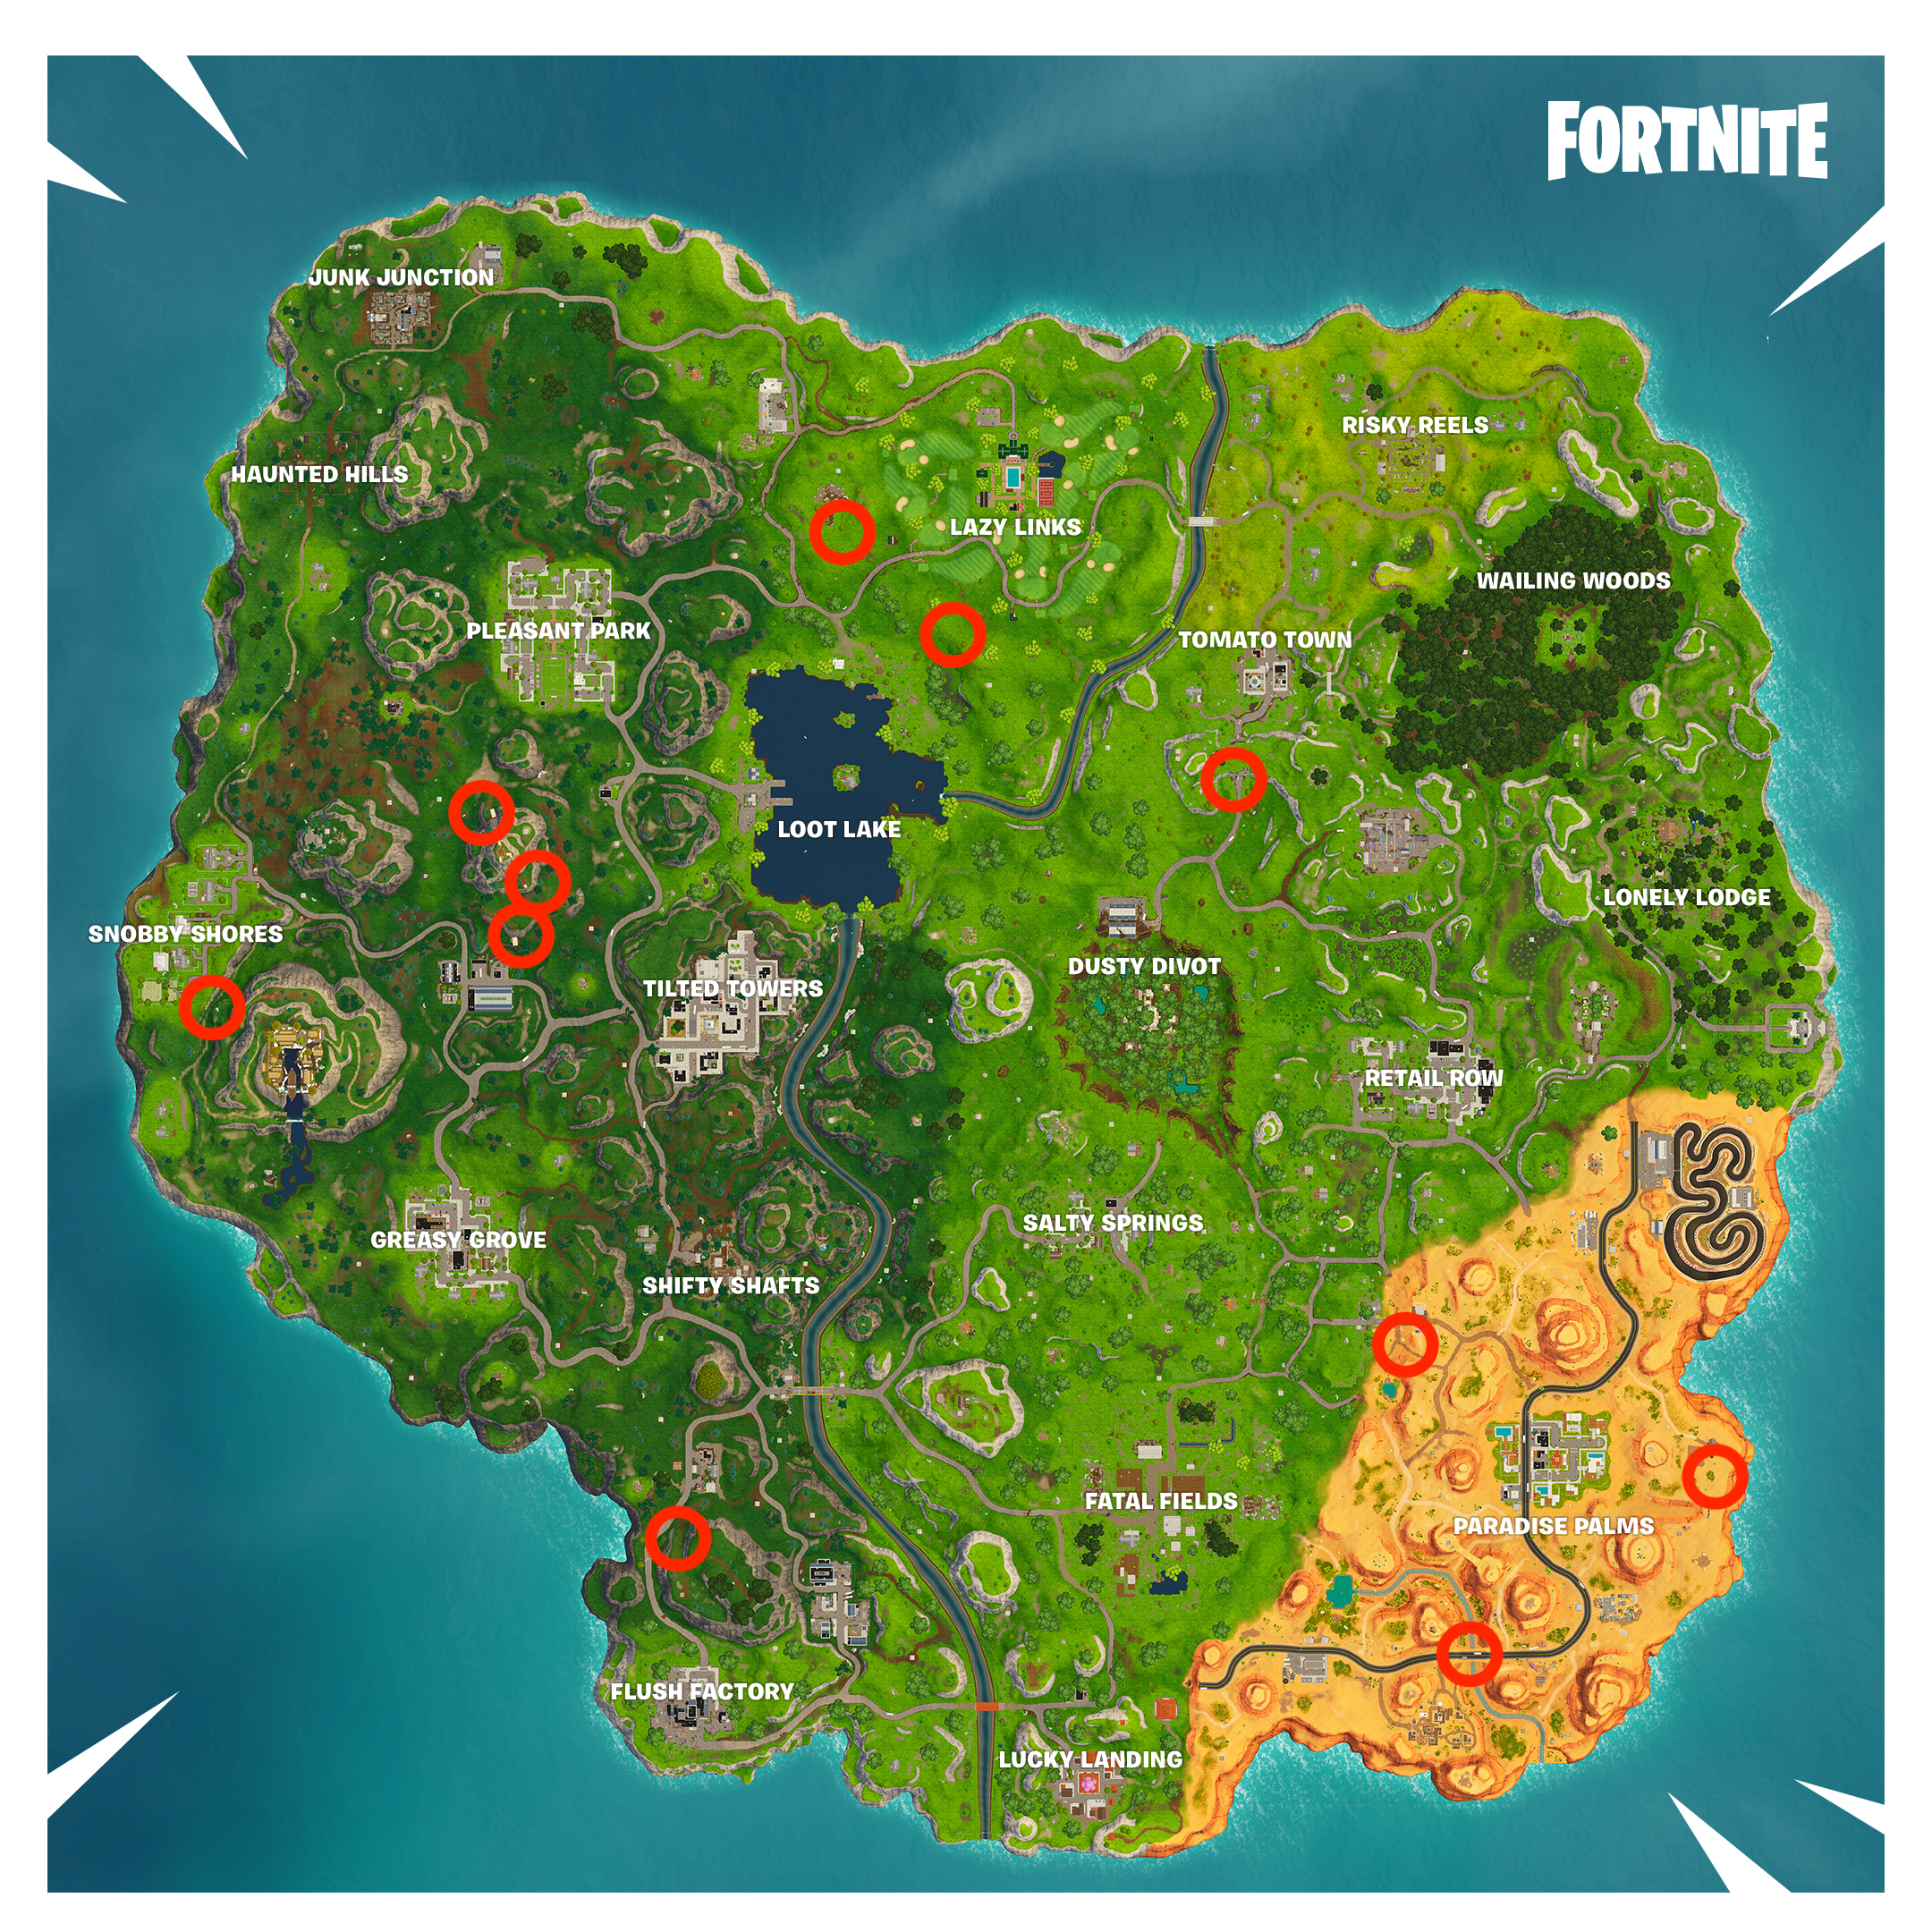 Fortnite Flaming Hoop Locations Map And Video Guides For Week 4